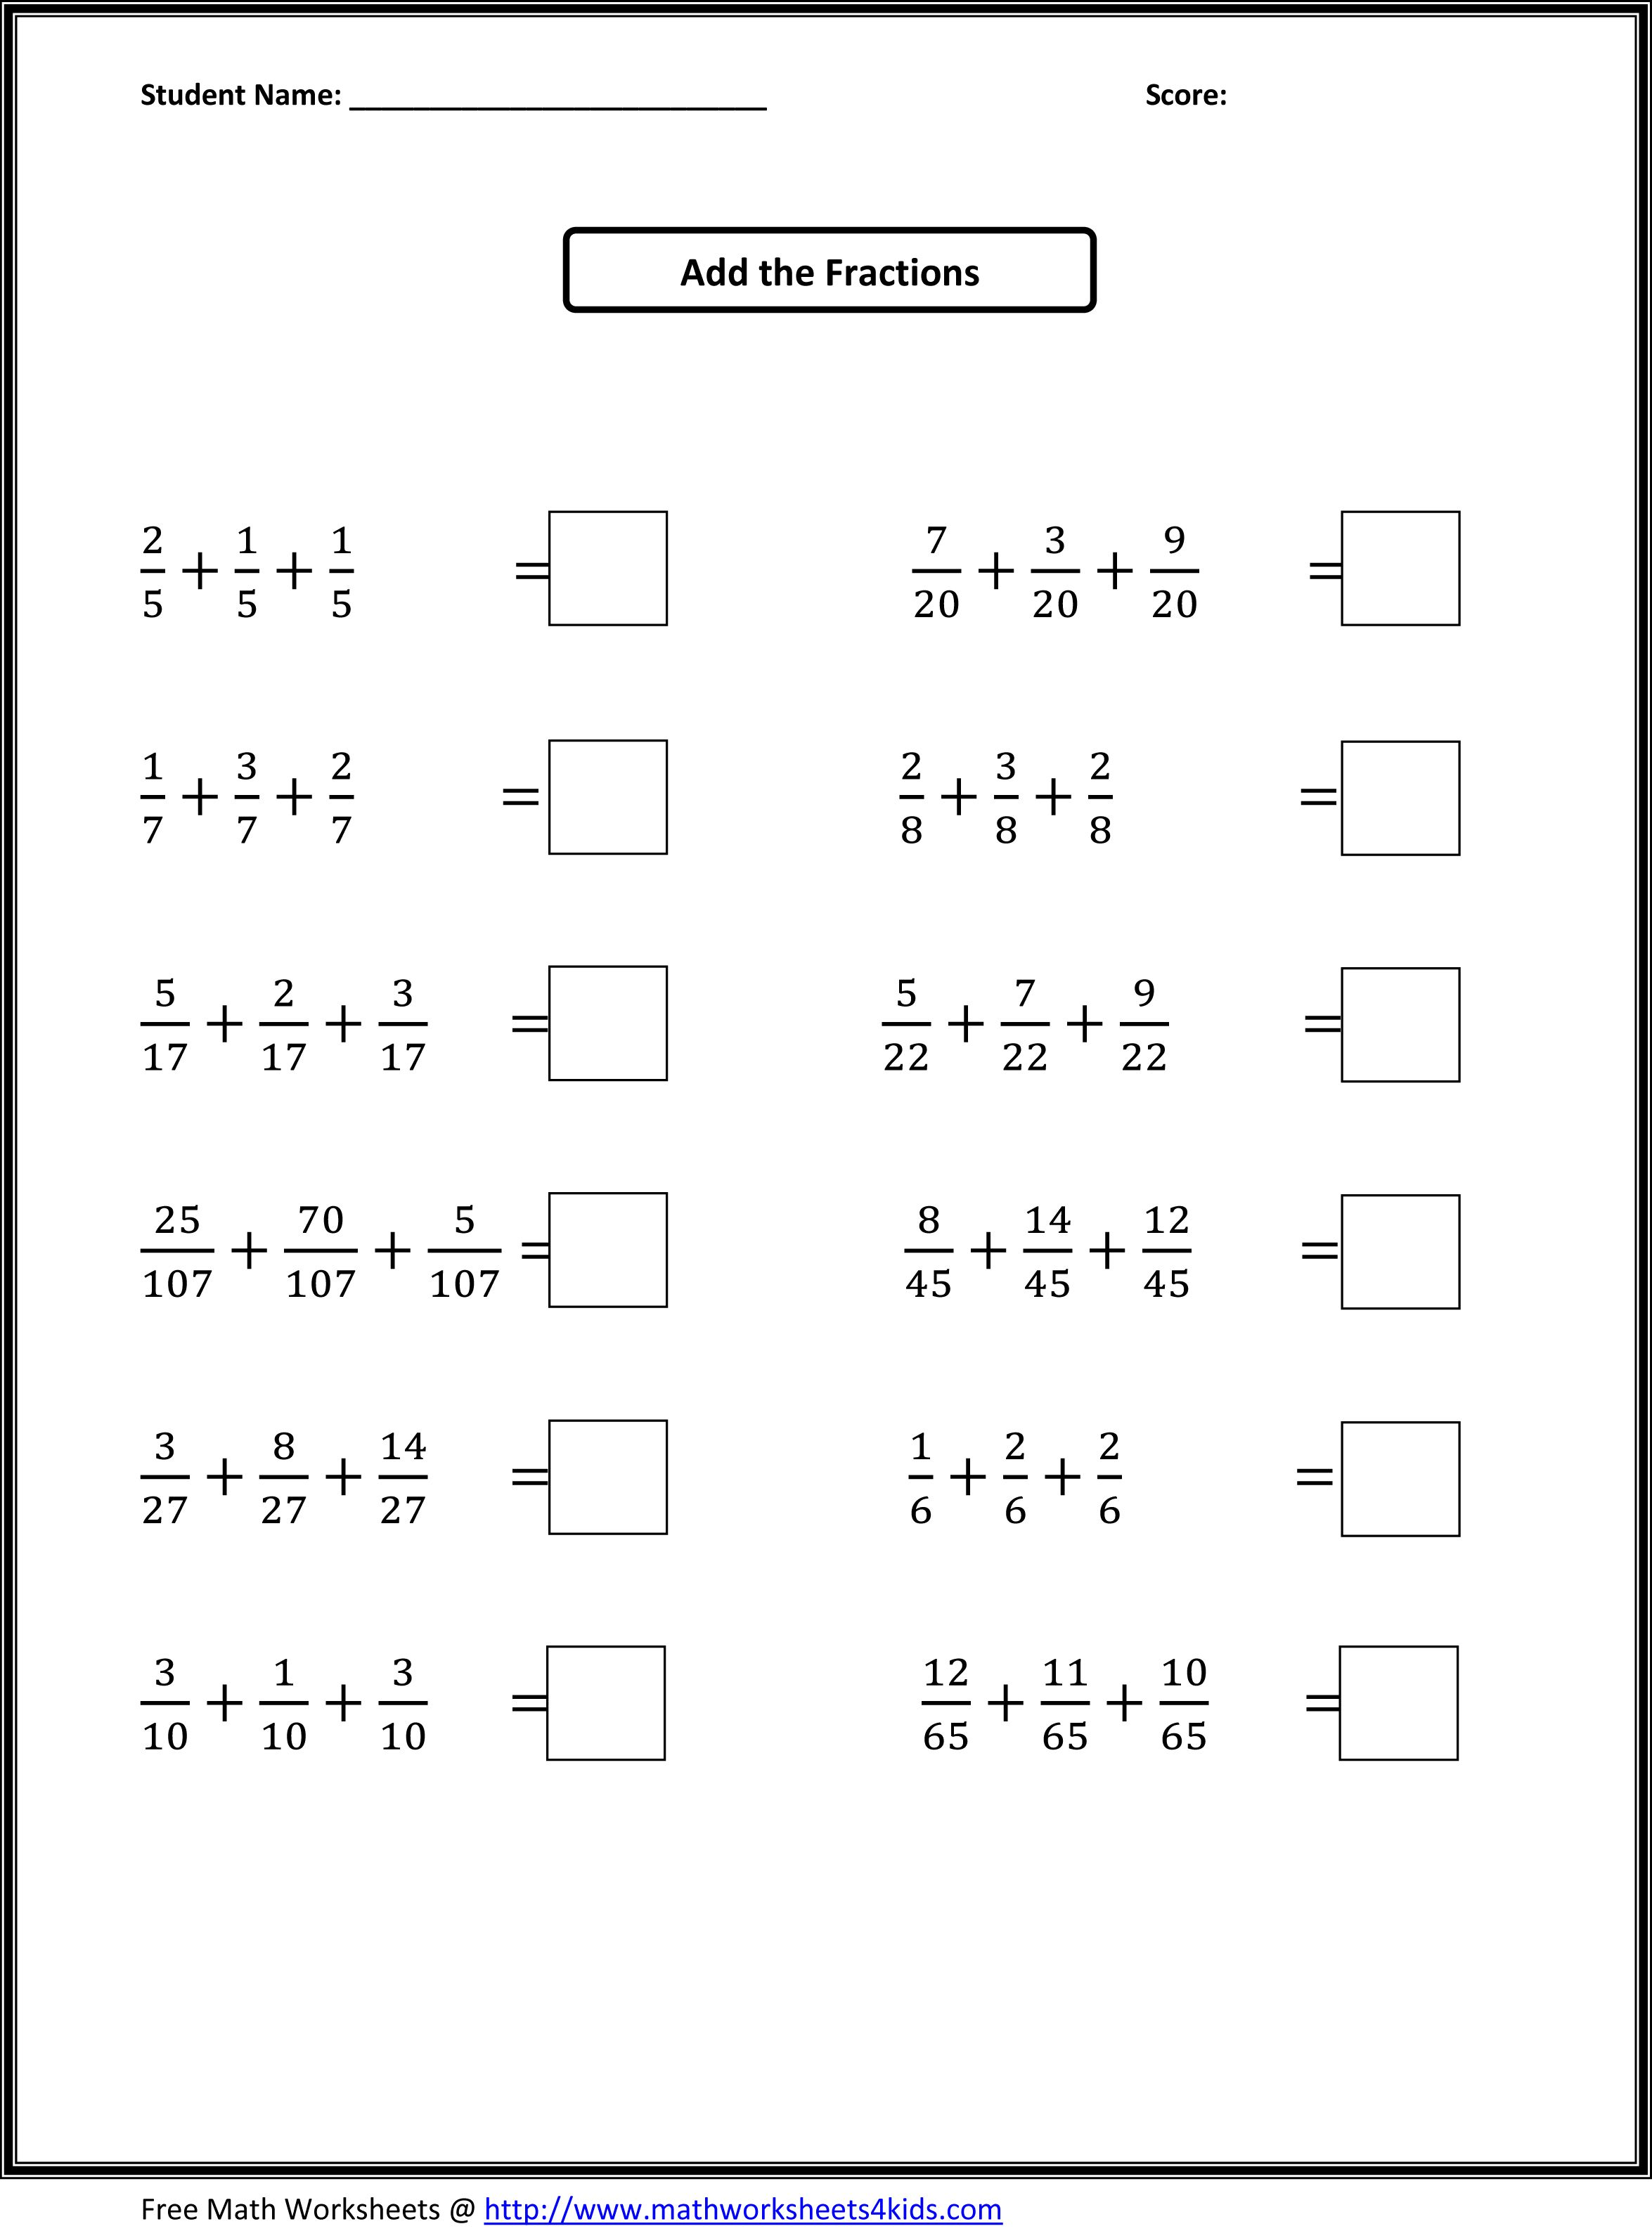 math worksheet : fractions easy work and math worksheets on pinterest : Multiplication Of Fractions Worksheets Grade 5